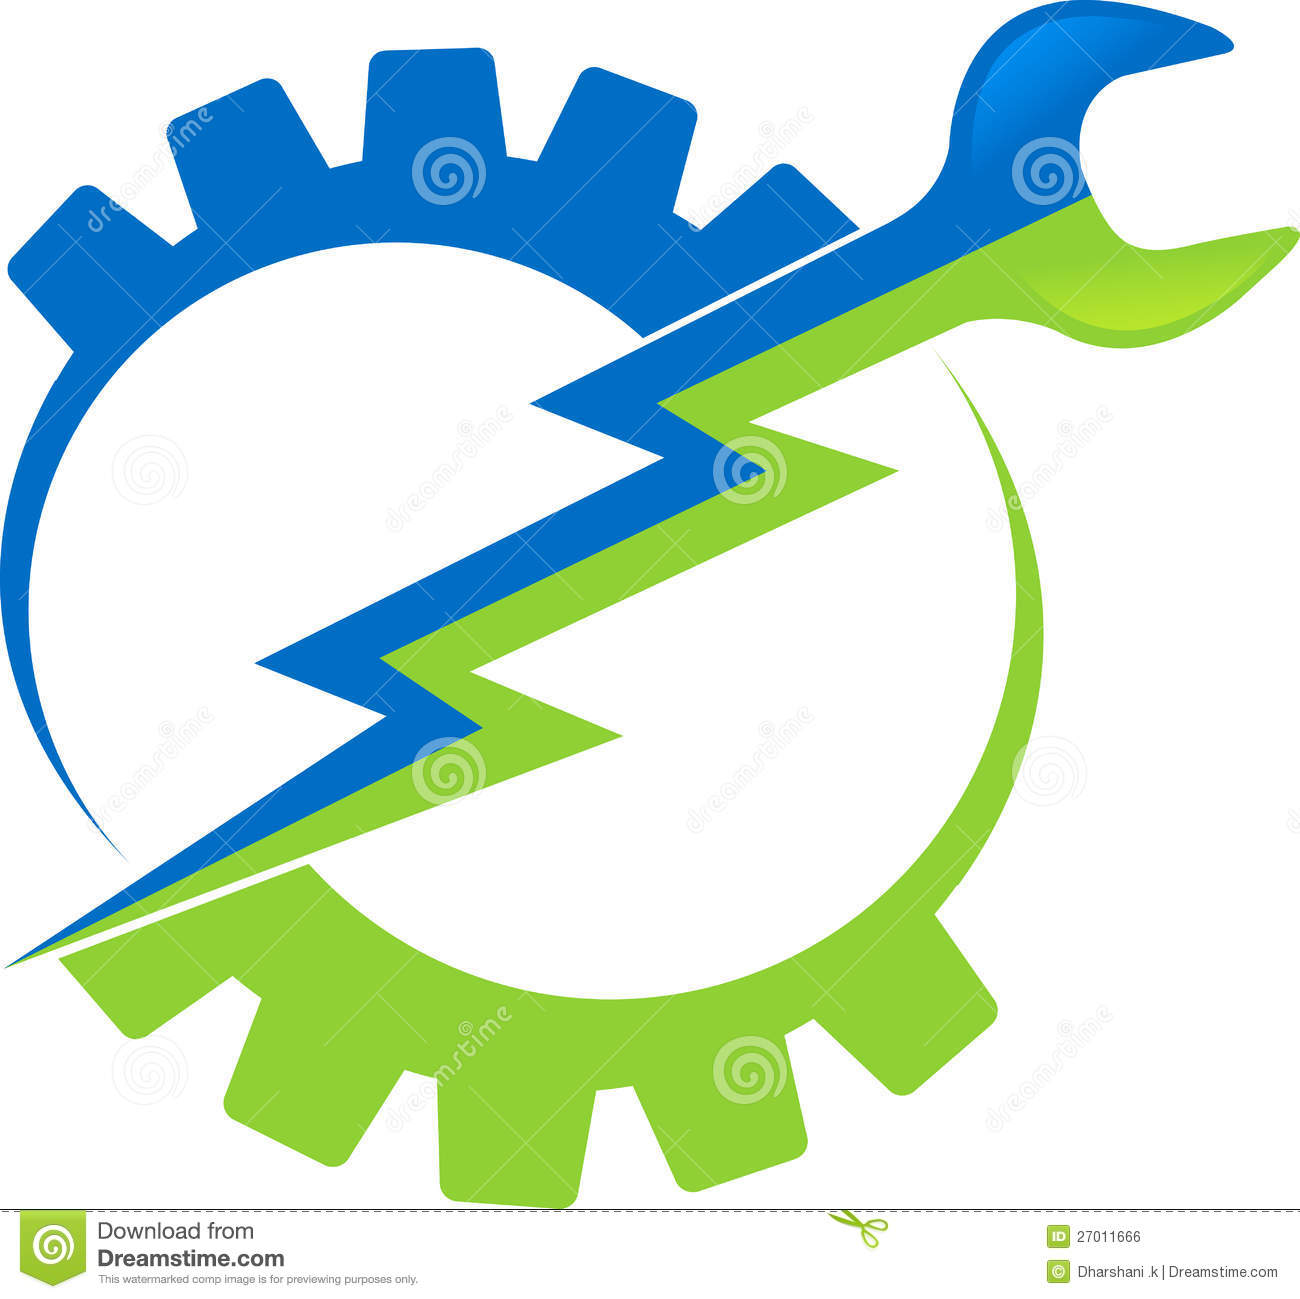 Tool clipart logo graphic royalty free Mechanical Engineer Logo | Clipart Panda - Free Clipart Images graphic royalty free